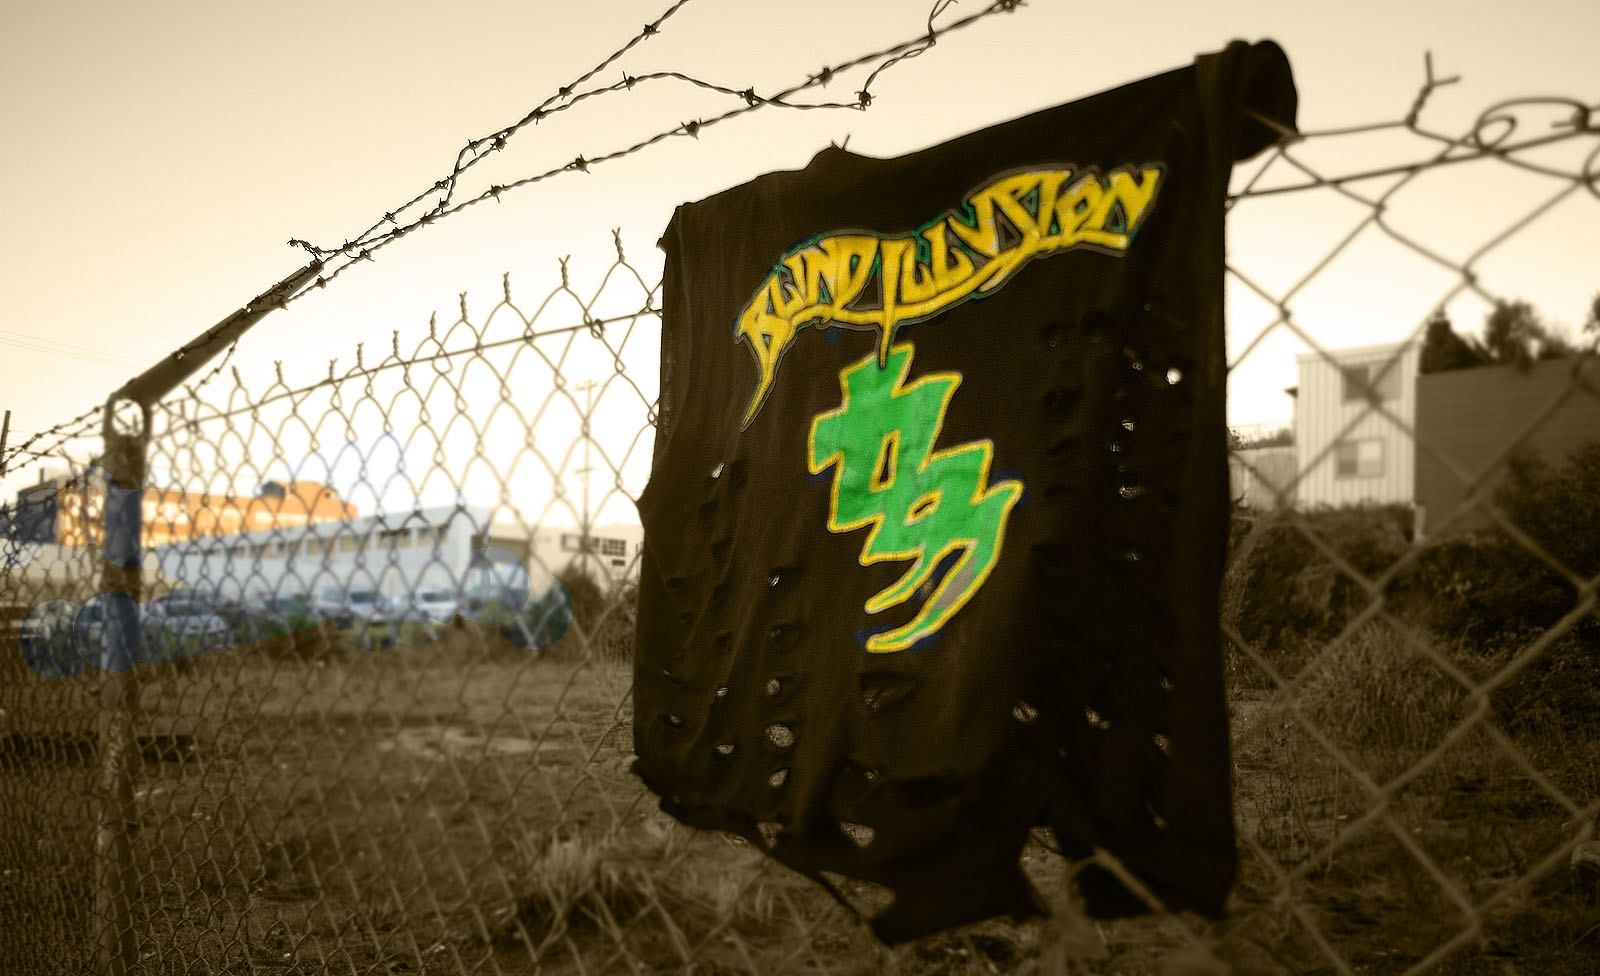 Black tee shirt with green and yellow blind illusion logo hanging on chainlink fence